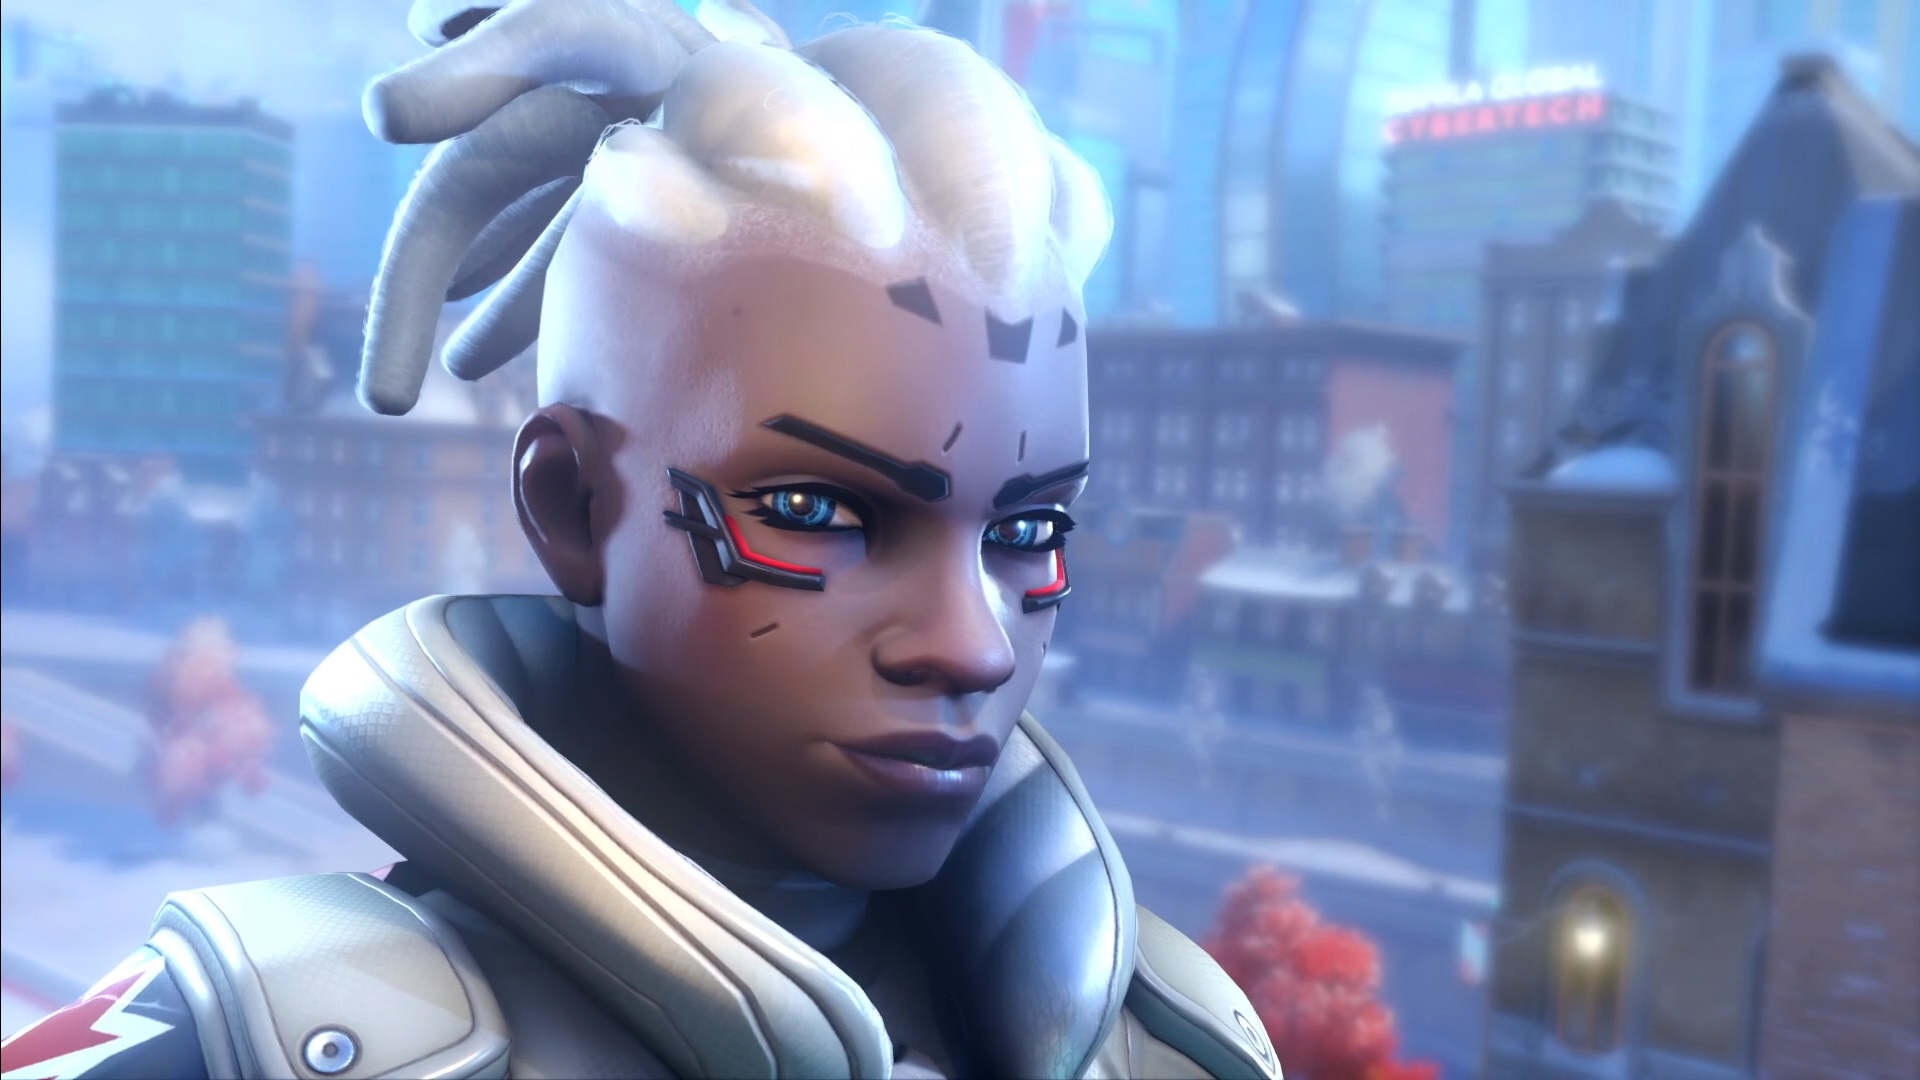 """Jeff Kaplan """"dreams"""" about Overwatch spin-off games and movies"""